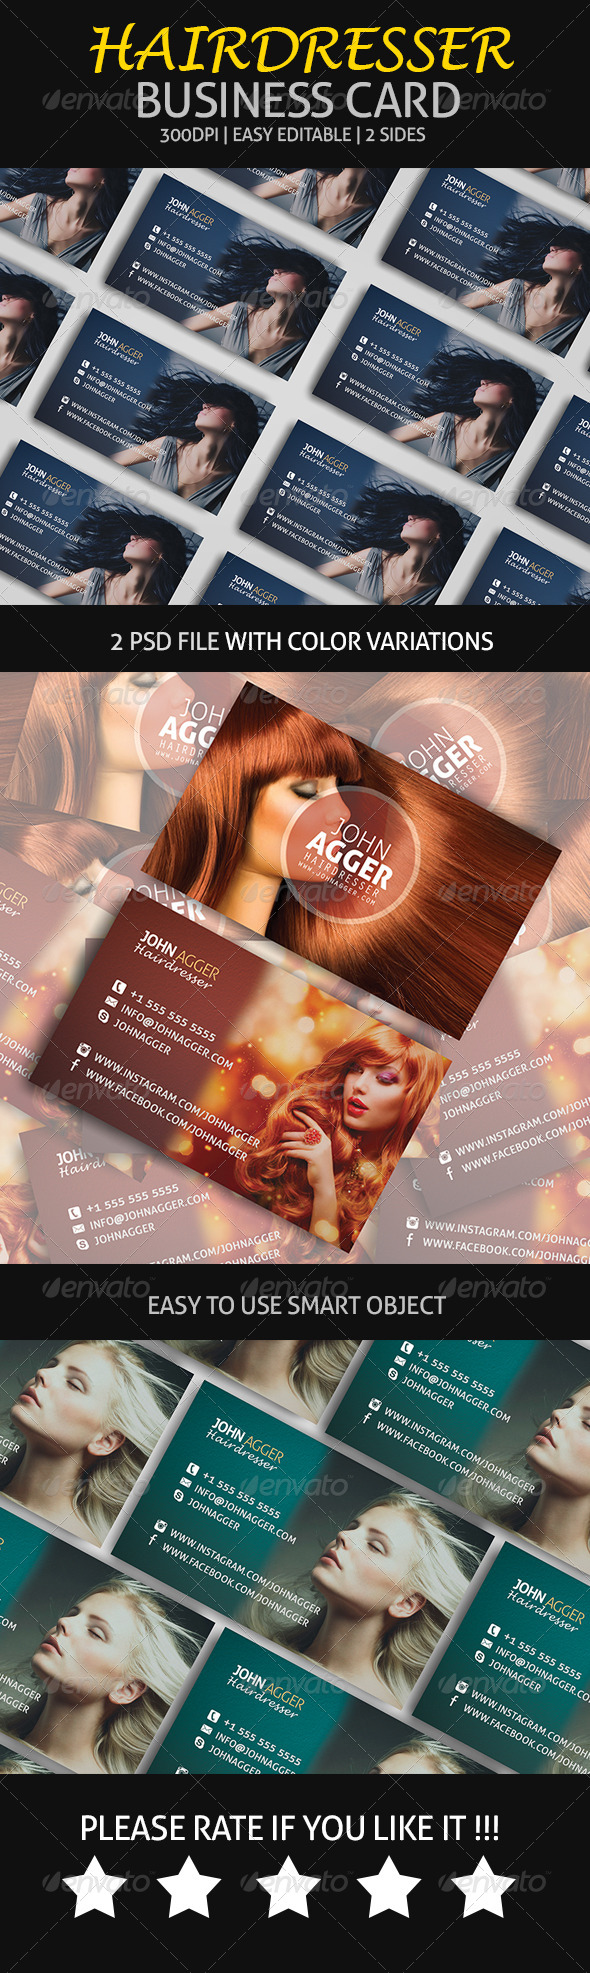 GraphicRiver Hairdresser Business Card 6987772